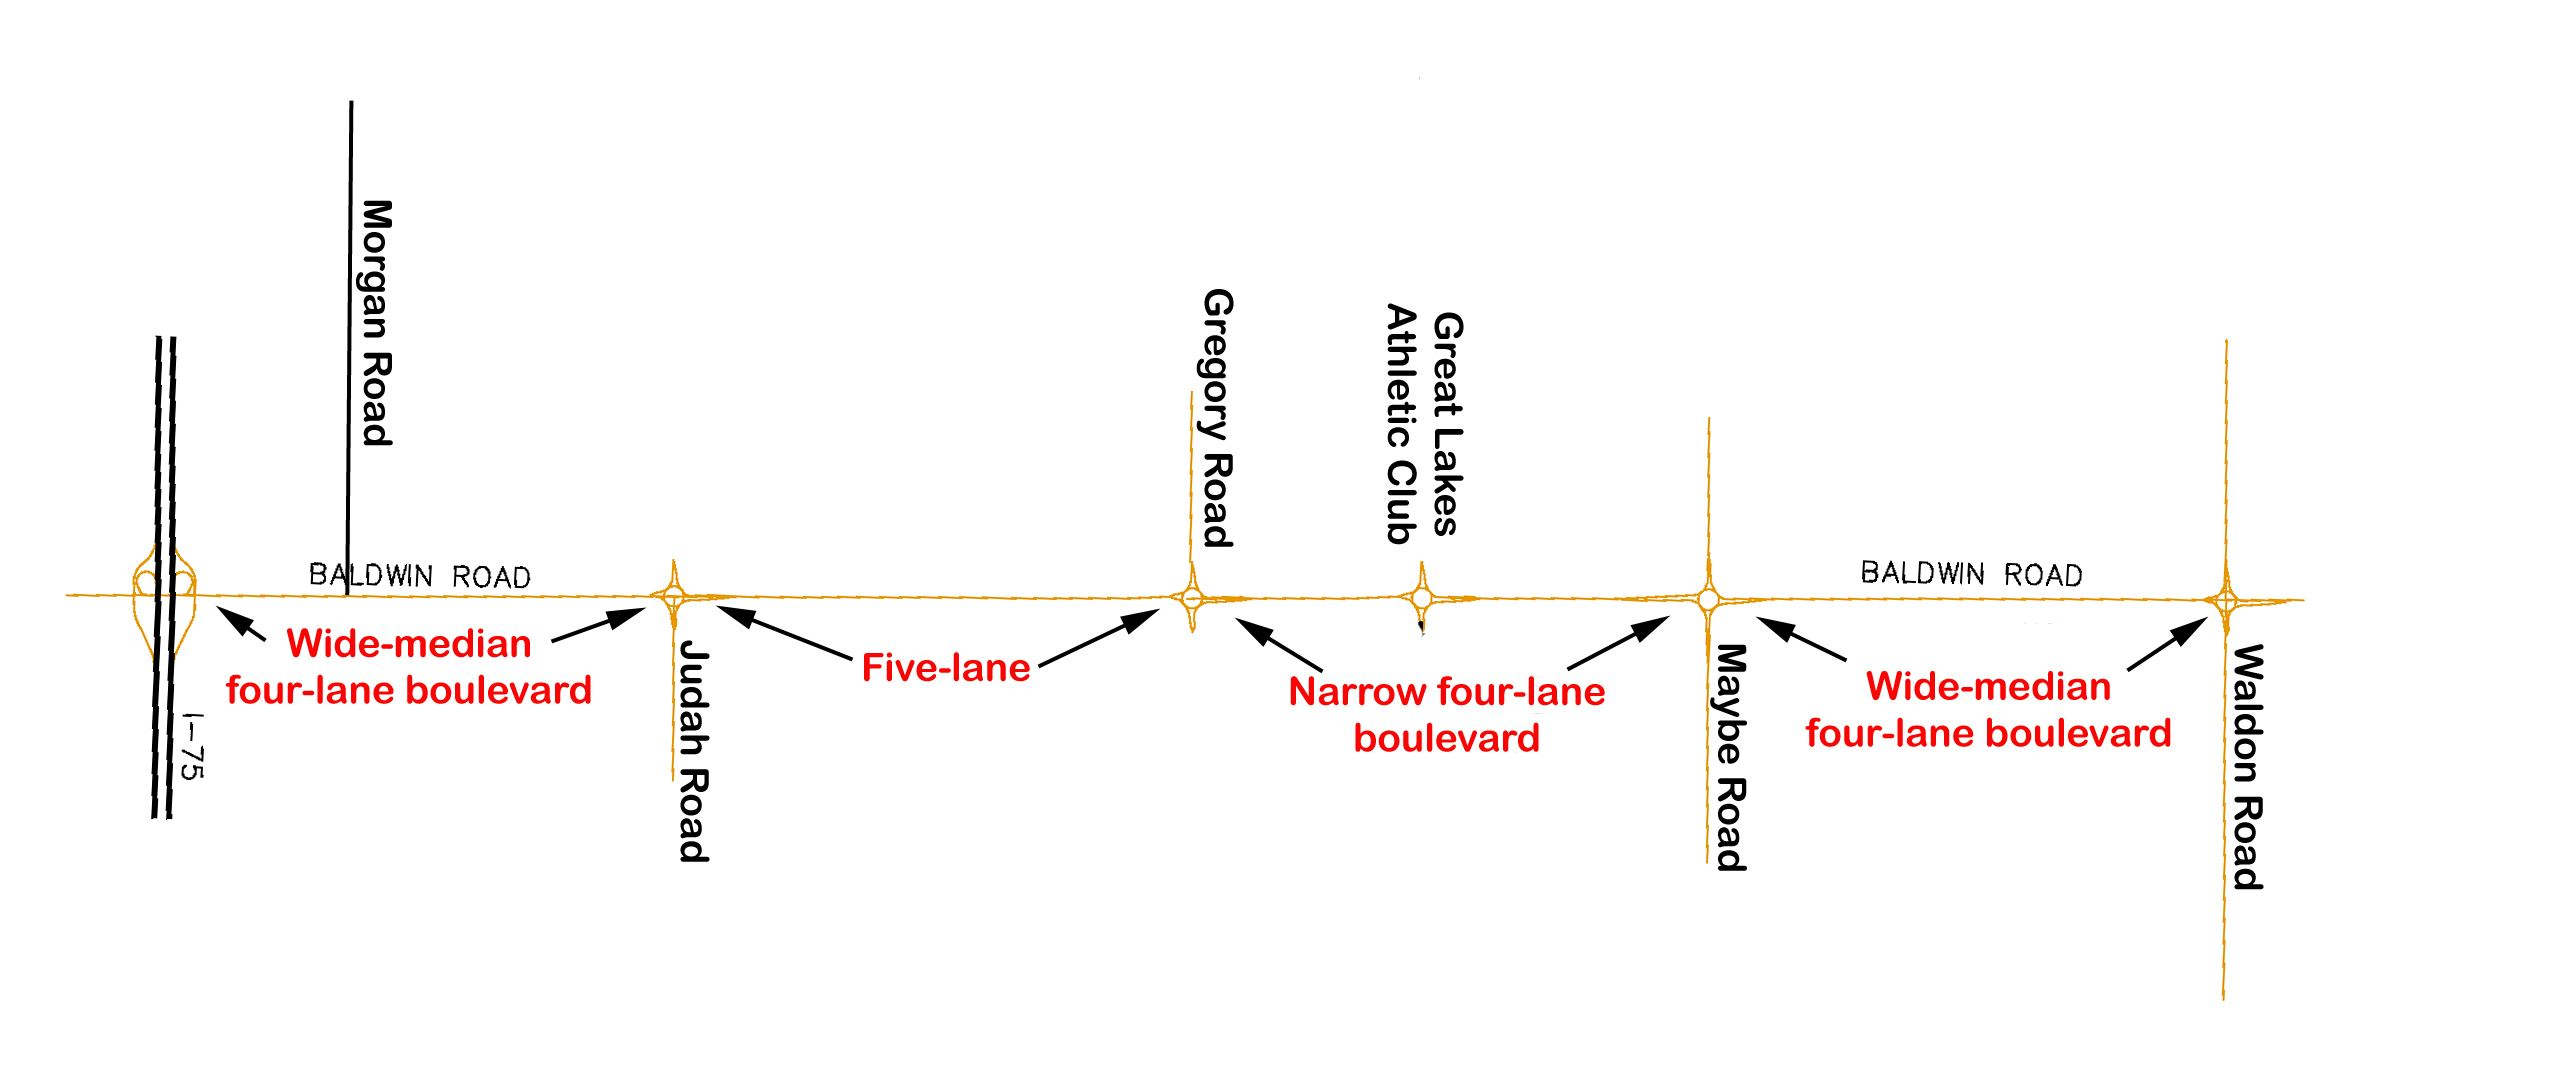 Baldwin Road diagram